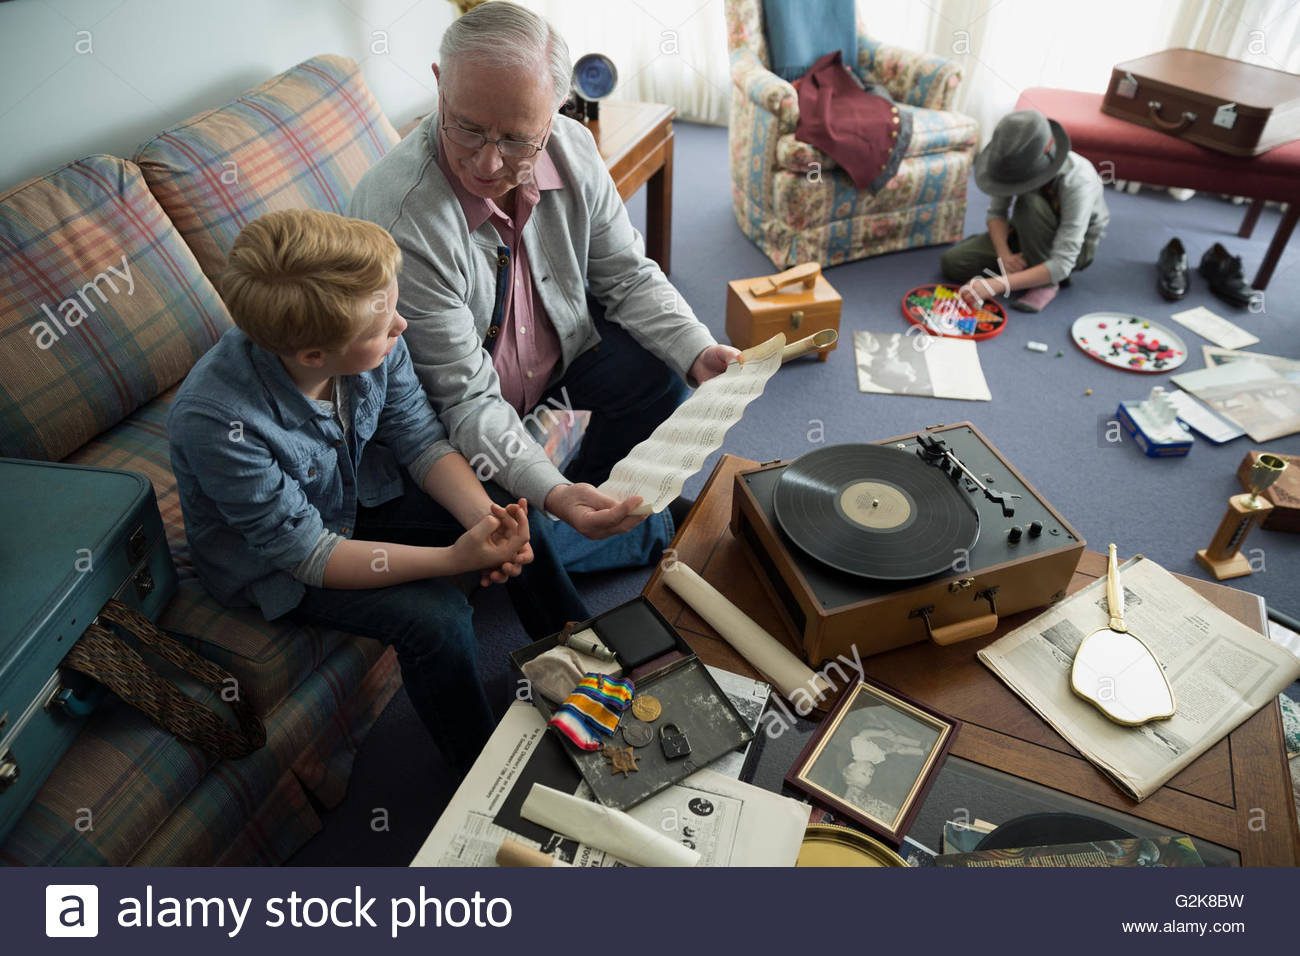 Grandfather and grandson looking through old memorabilia - Stock Image